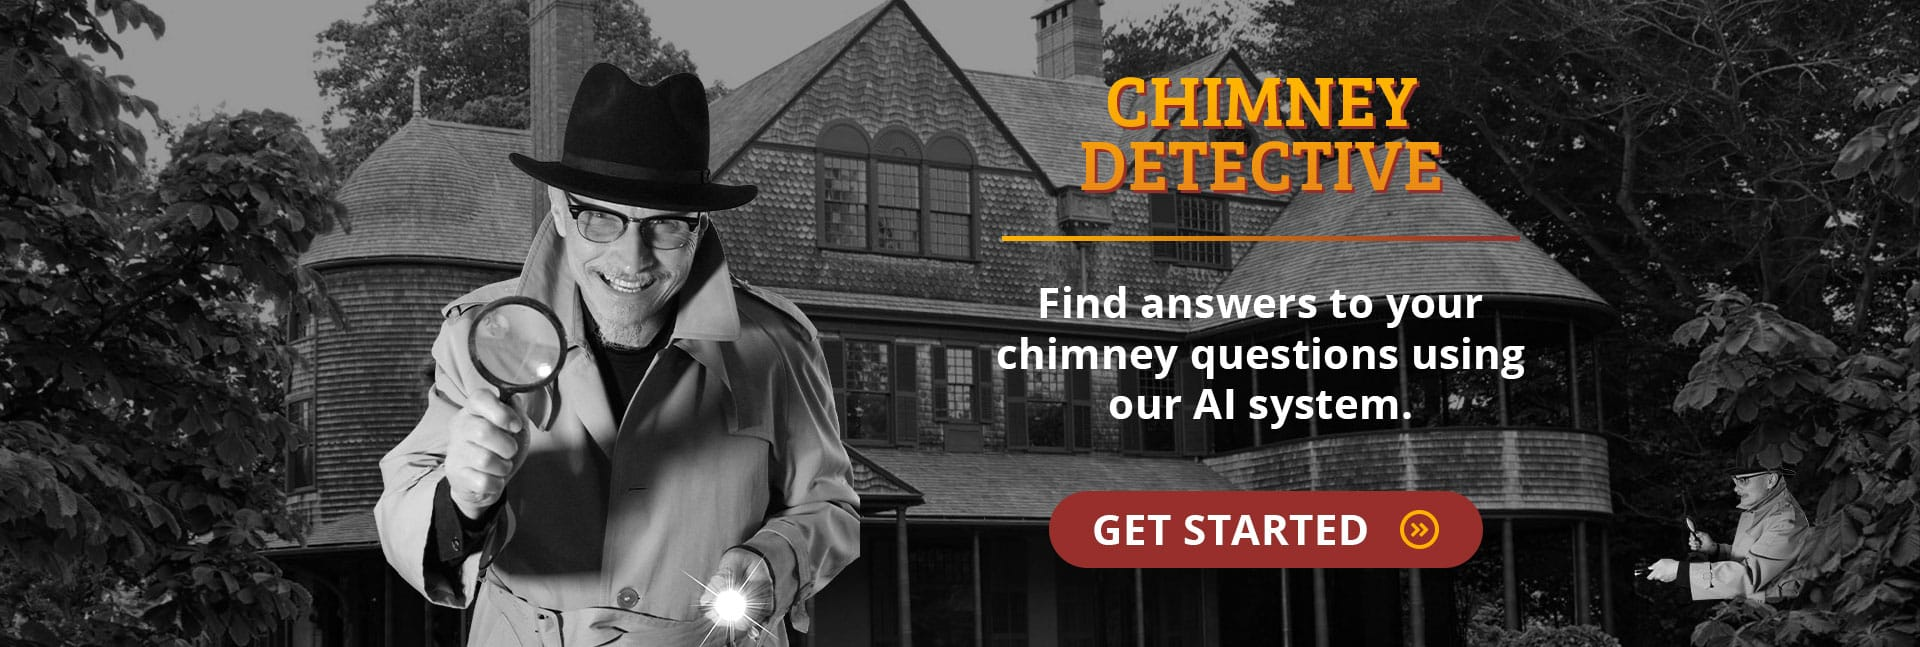 Get started with the Chimney Detective